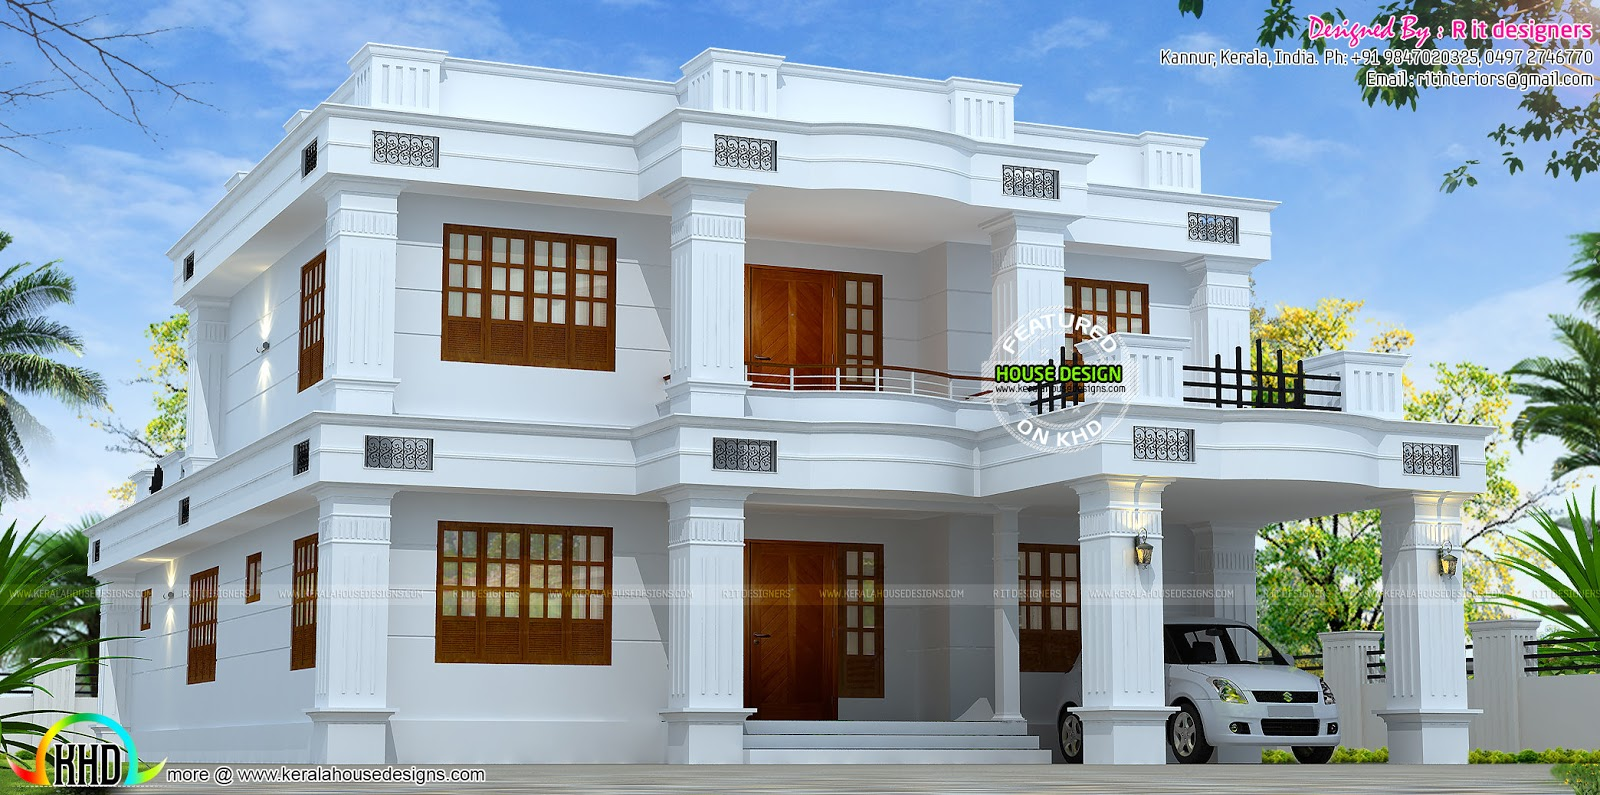 February 2016 kerala home design and floor plans for Home designs for kerala